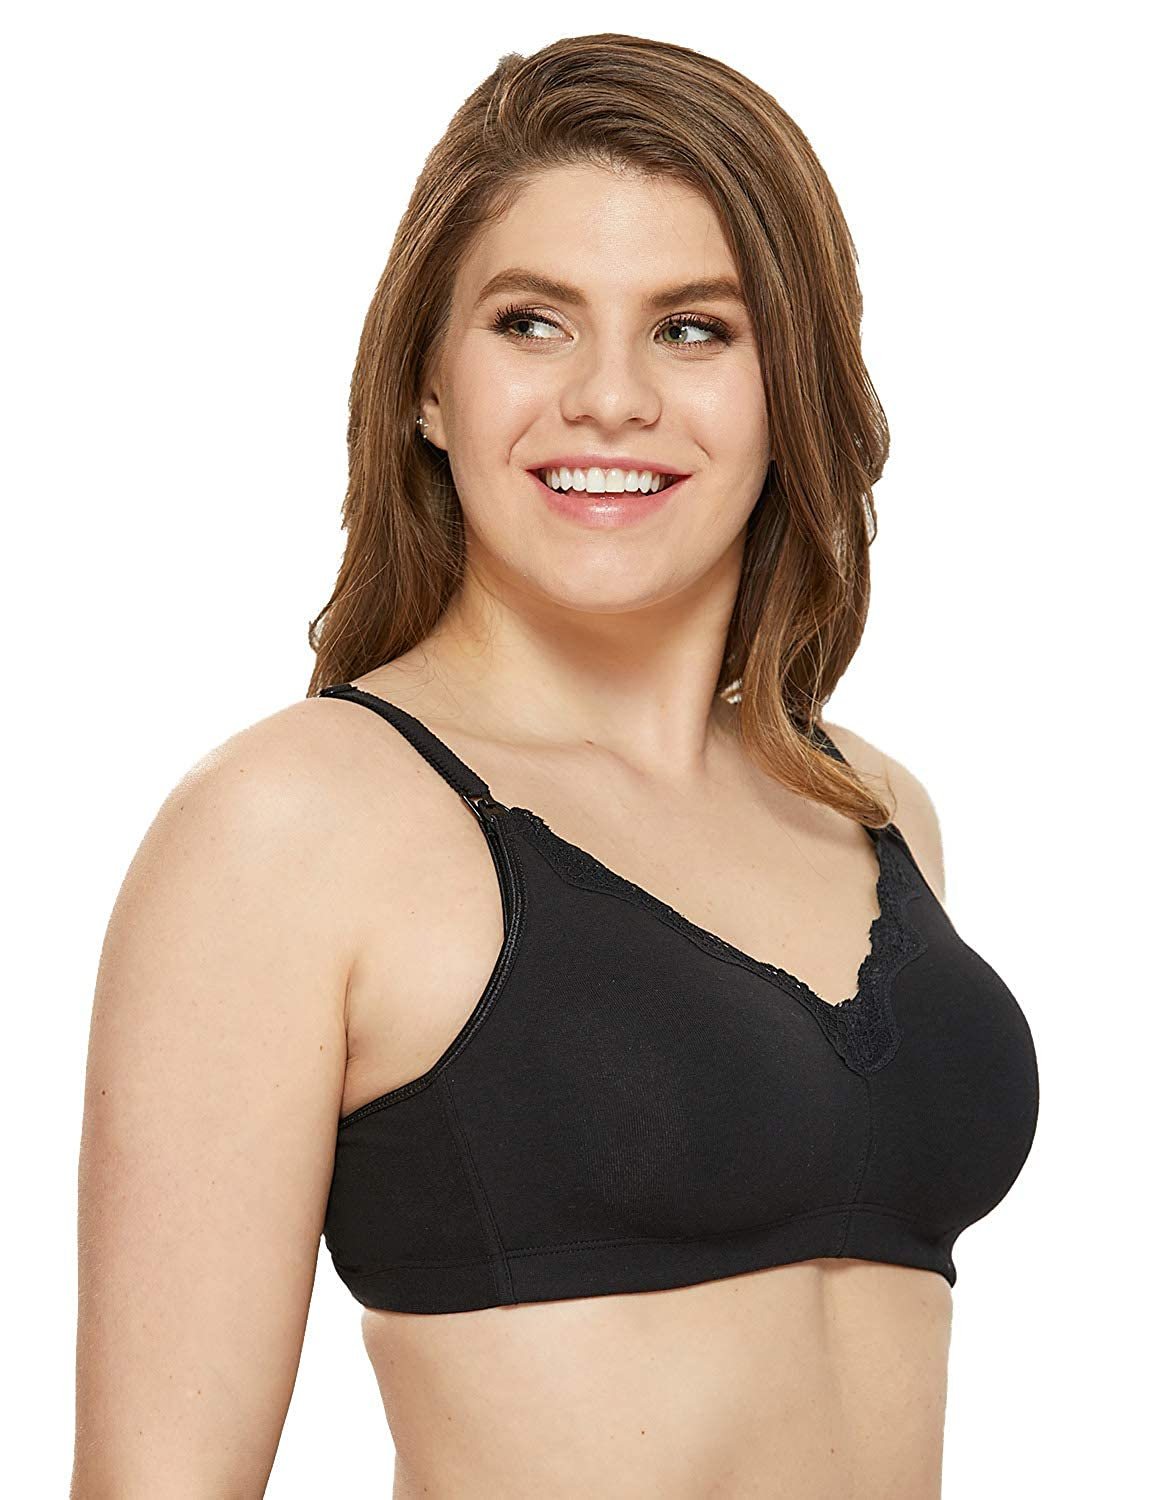 a3ecb80e13bb2 Gratlin Women's Wirefree Non Padded Plus Size Cotton Maternity Nursing Bra  Lace at Amazon Women's Clothing store: